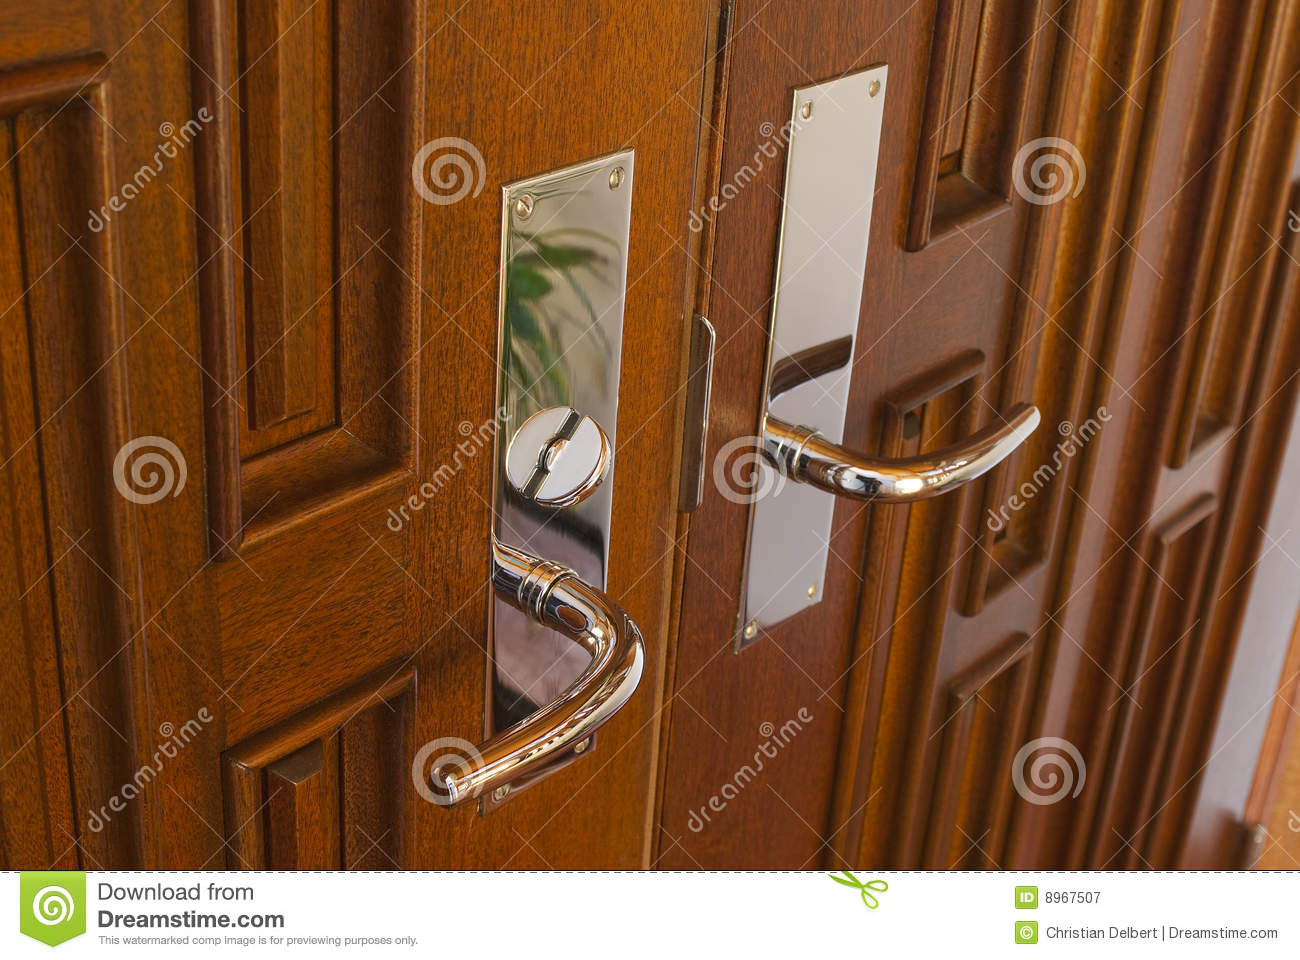 960 #723B12 Double Door Handles Royalty Free Stock Photography Image: 8967507 wallpaper Hardware For Double Entry Doors 46551300